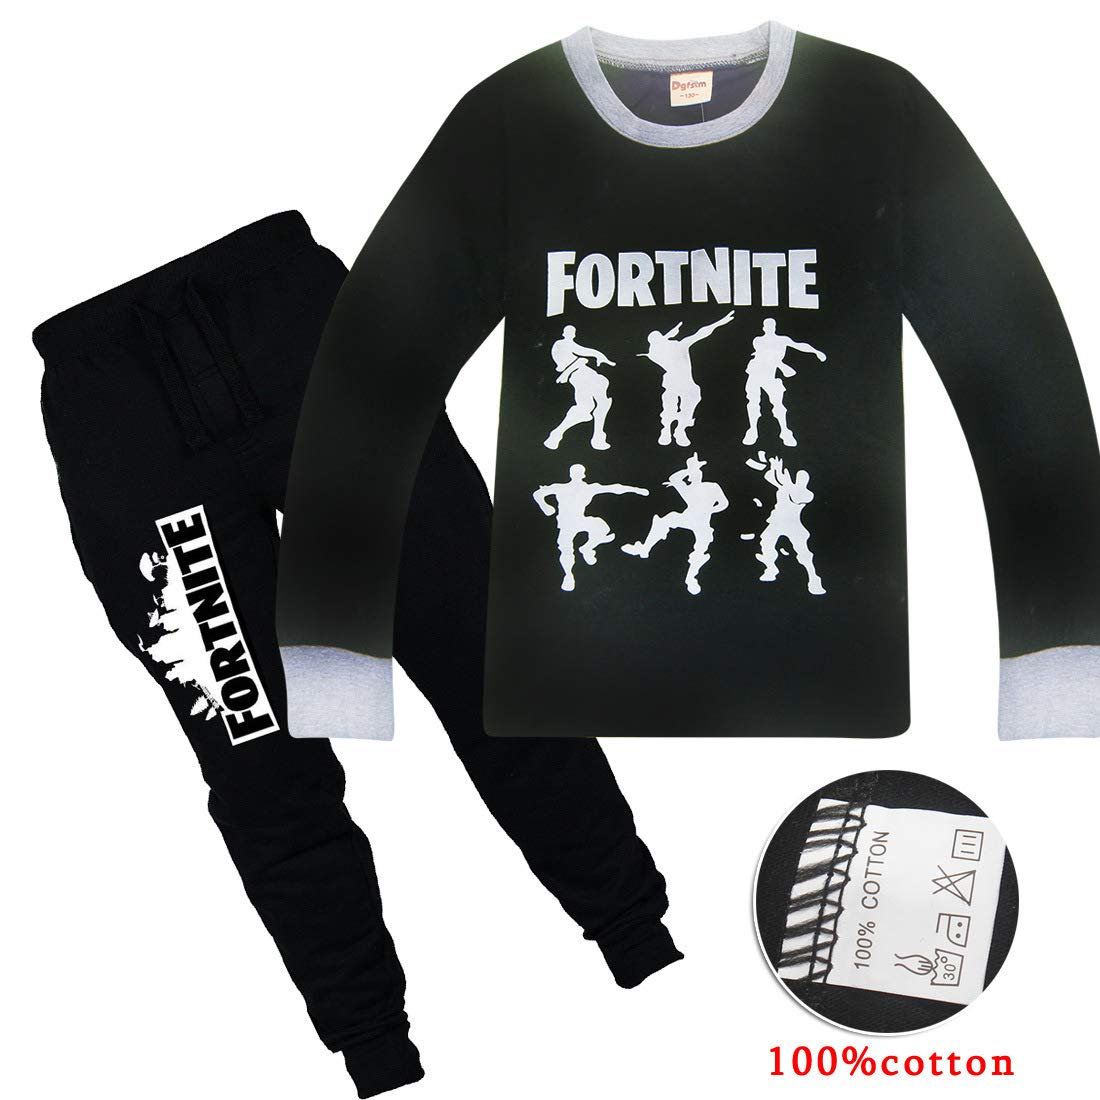 Fortnite Games Cotton Pullover Set Unisex Boys Girls Crew-Neck Sweatshirt Set